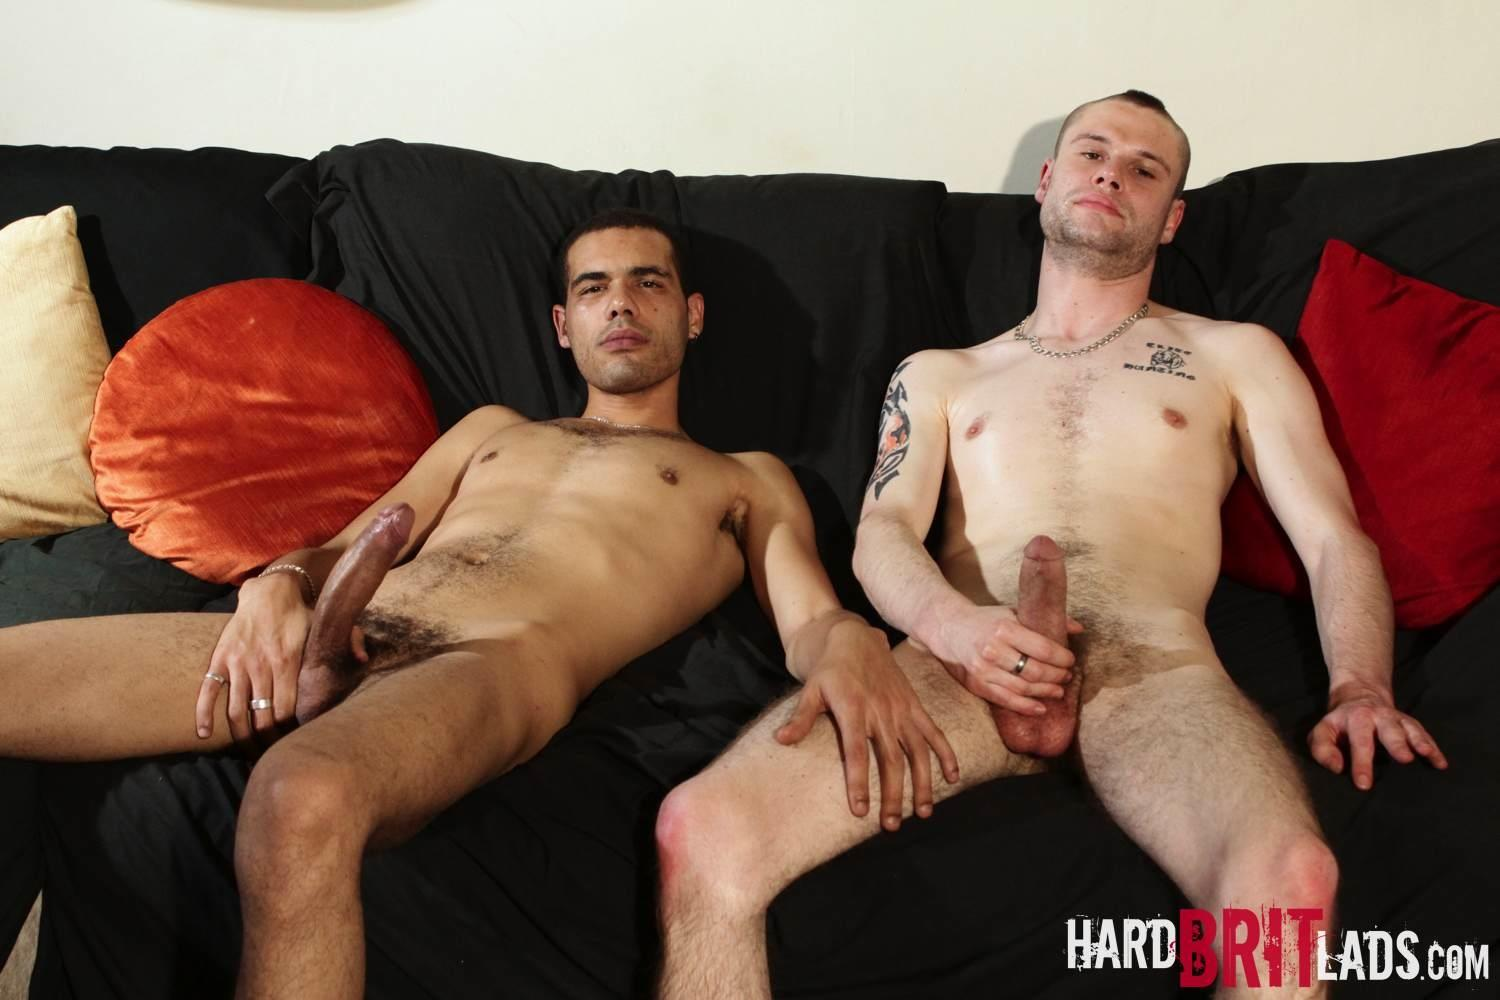 Hard-Brit-Lads-Shaun-Jones-and-Jay-T-Bisexual-Skinhead-Sucking-First-Big-Cock-Amateur-Gay-Porn-19 Hung Amateur Bisexual British Skinhead Sucks His First Cock Ever